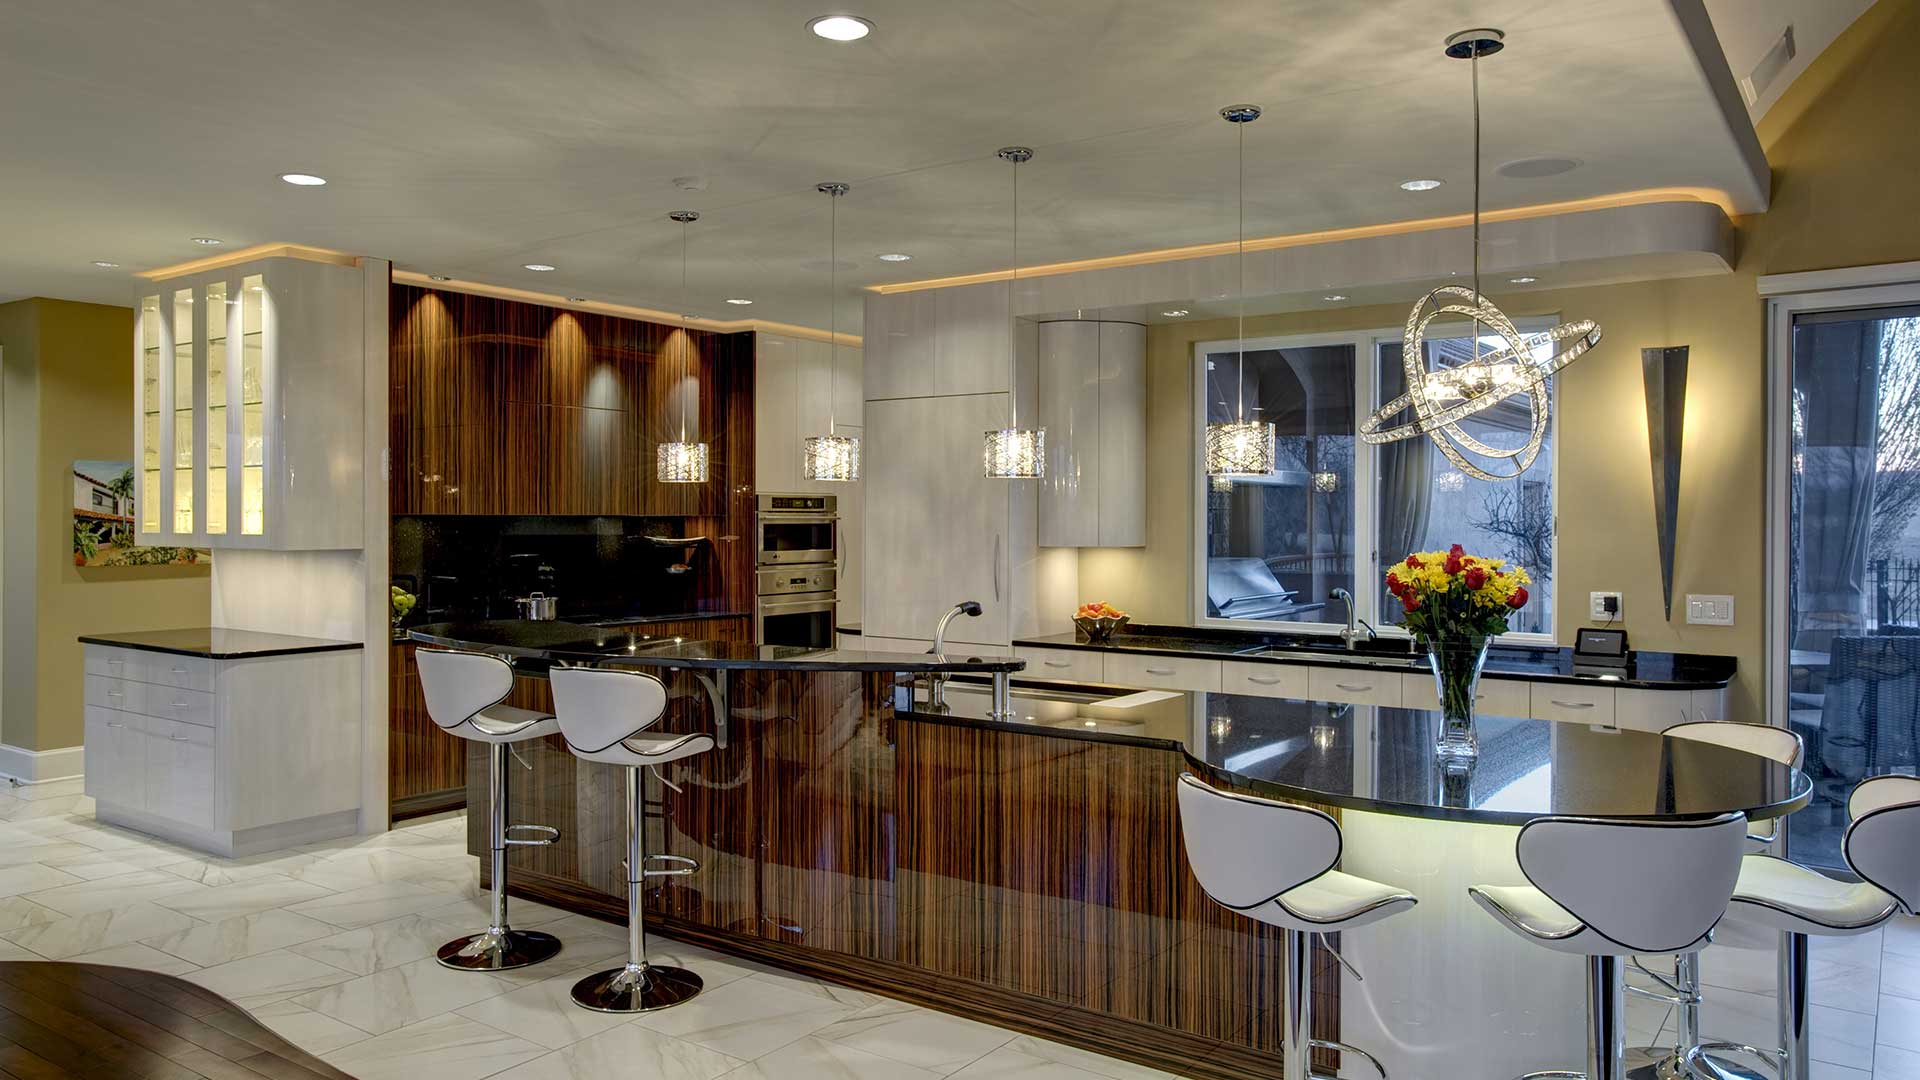 Kitchen Cabinets Pictures Gallery Kitchen And Bath Remodeling And Design Kitchens By Kleweno